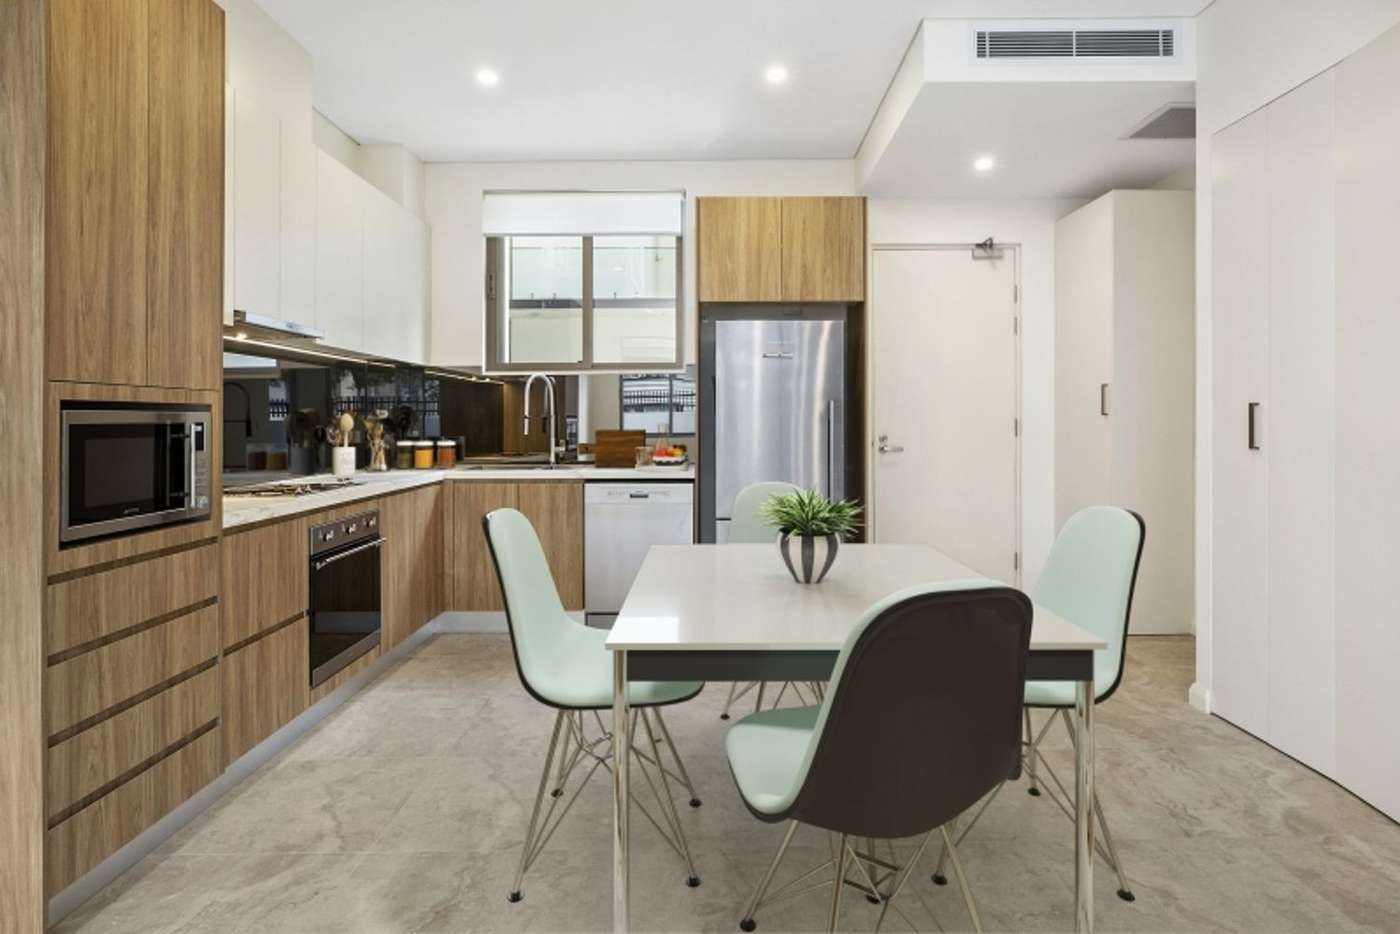 Main view of Homely apartment listing, 21-27 William St, Alexandria NSW 2015